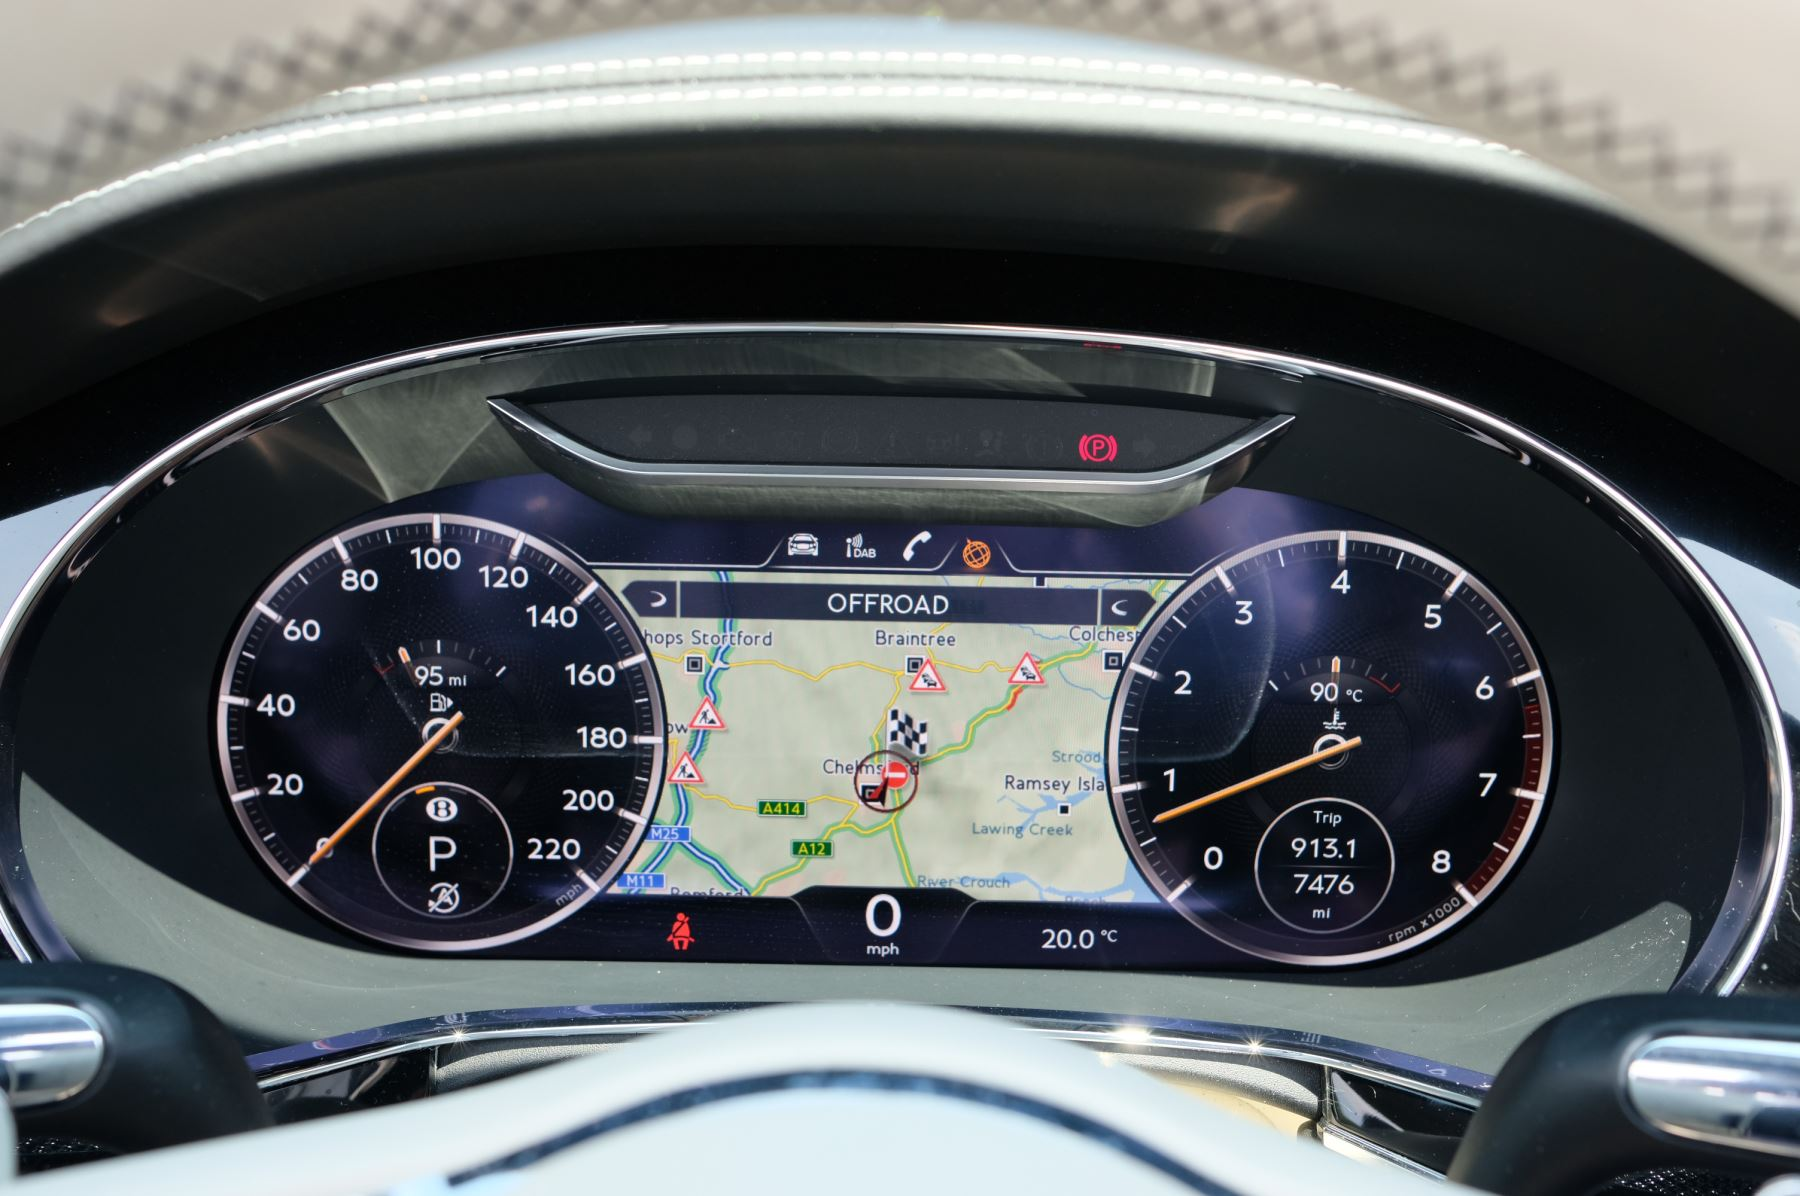 Bentley Continental GTC 6.0 W12 - Mulliner Driving Specification and Centenary Specification image 15